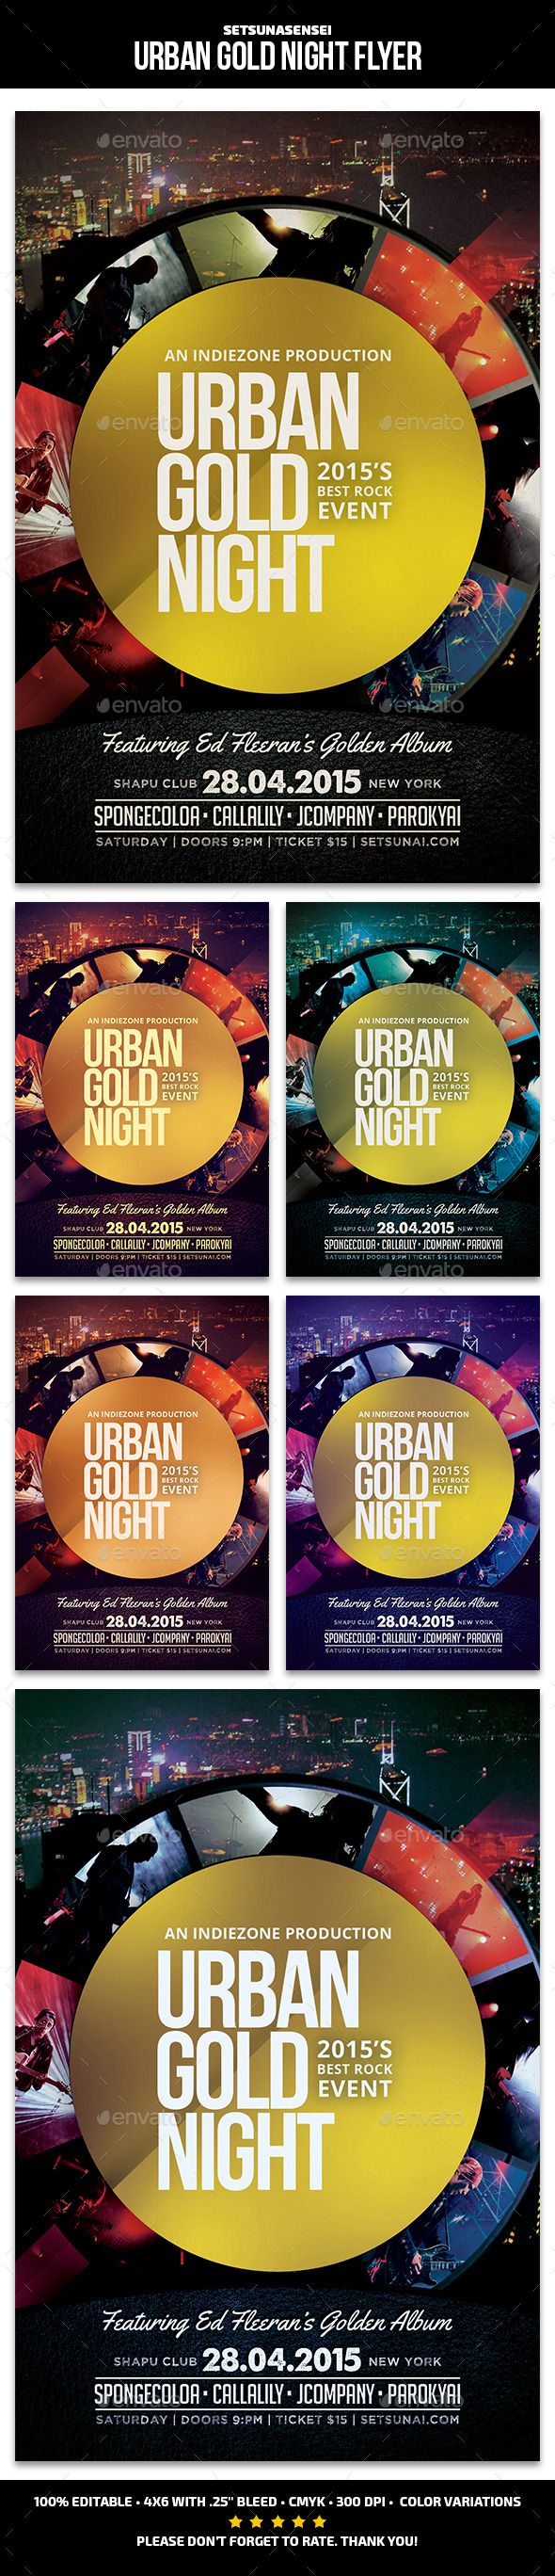 urban gold night flyer